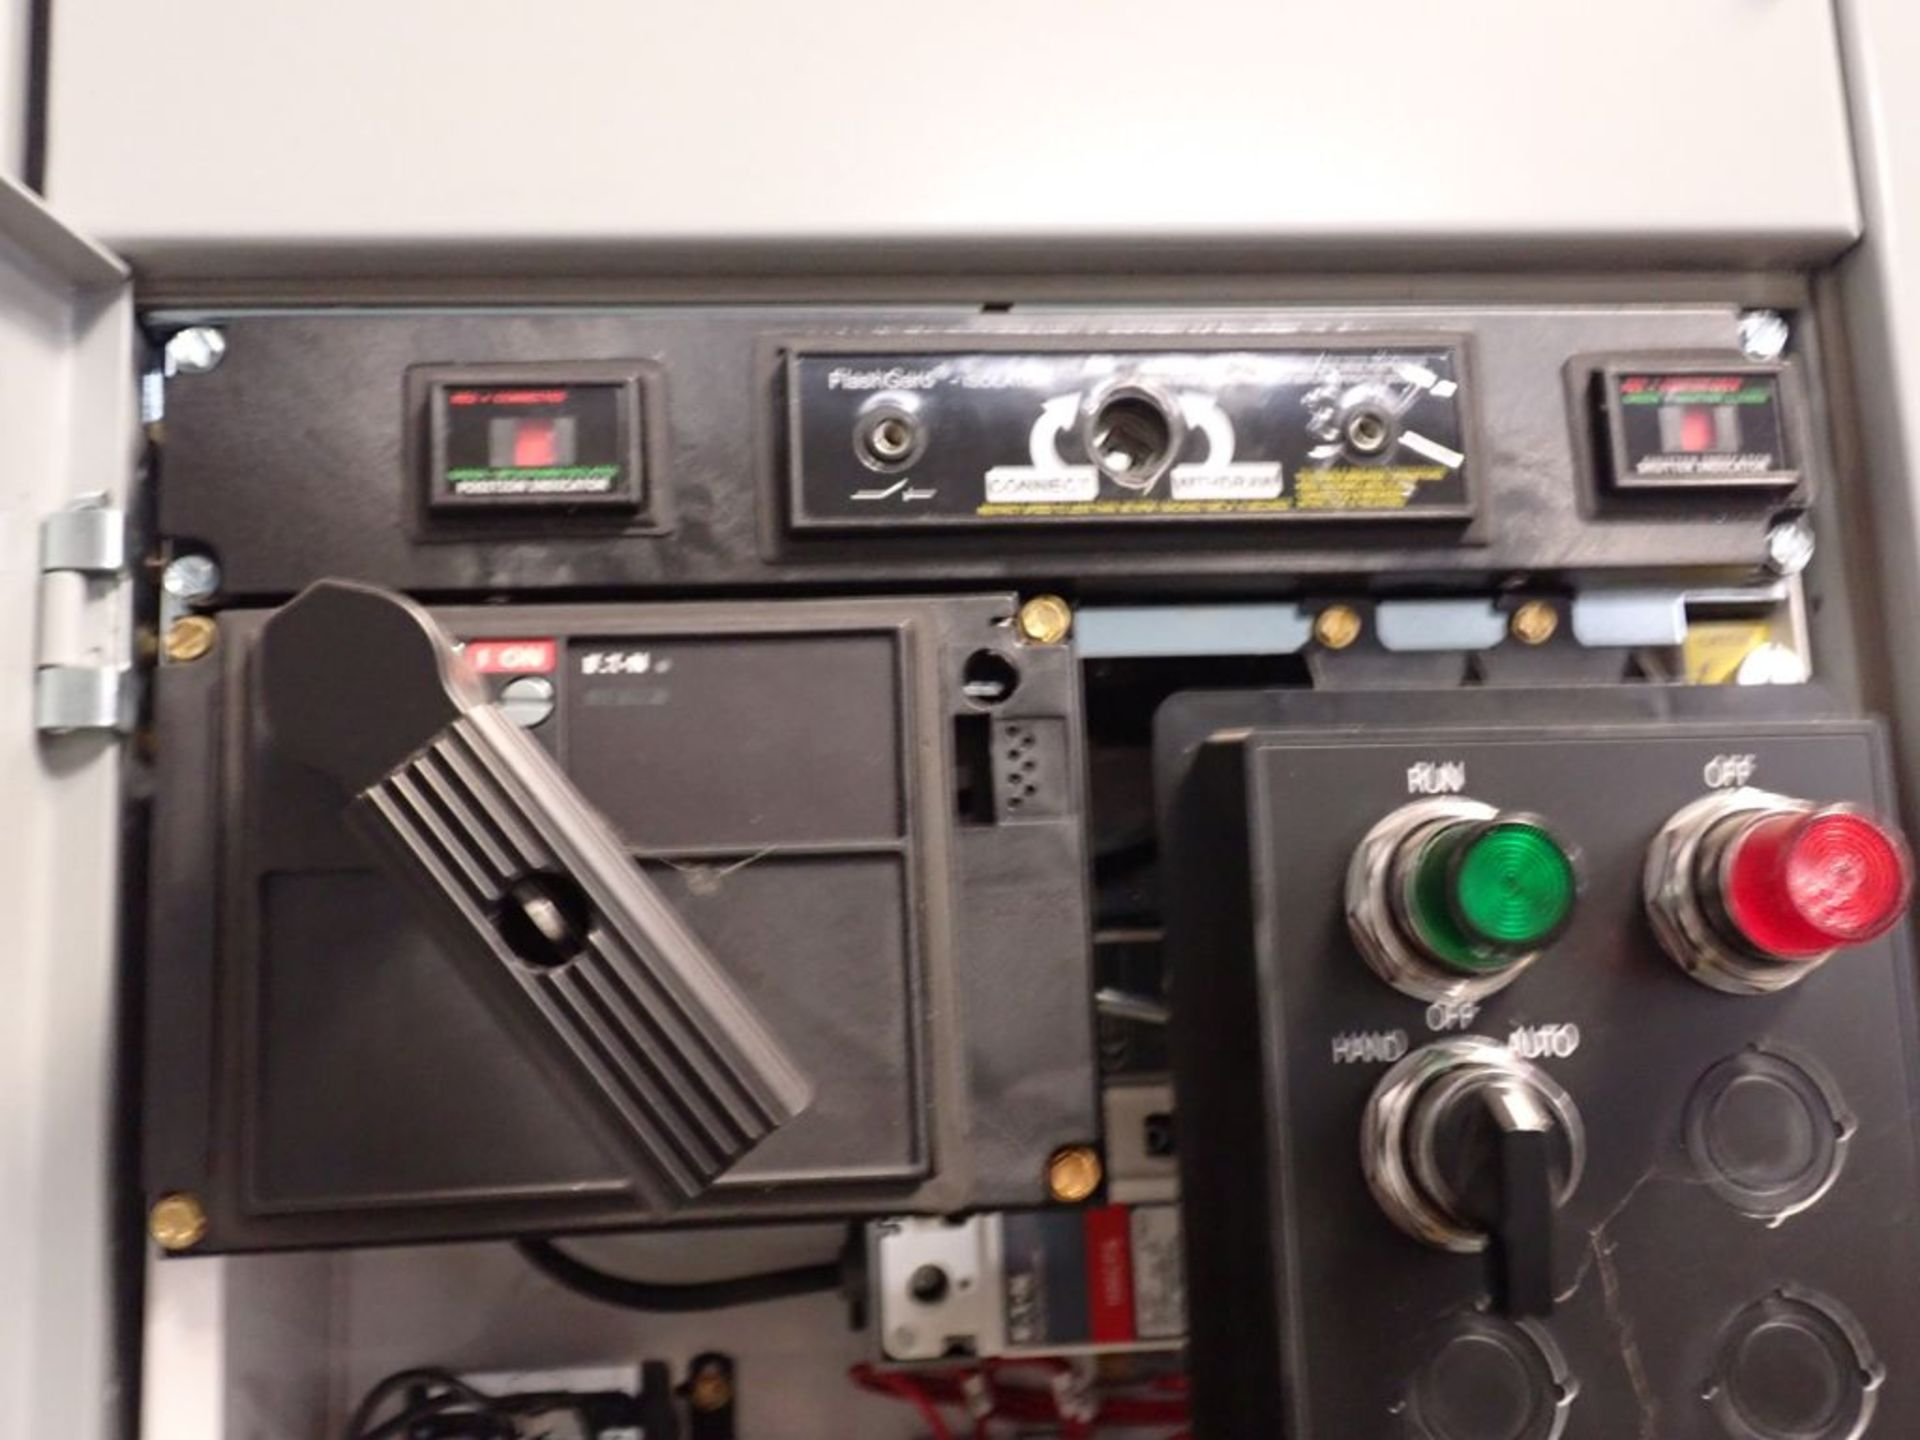 Eaton Freedom 2100 Series Motor Control Center | (11) F206-30A-10HP; (5) F206-15A-10HP; (1) SVX900- - Image 31 of 102